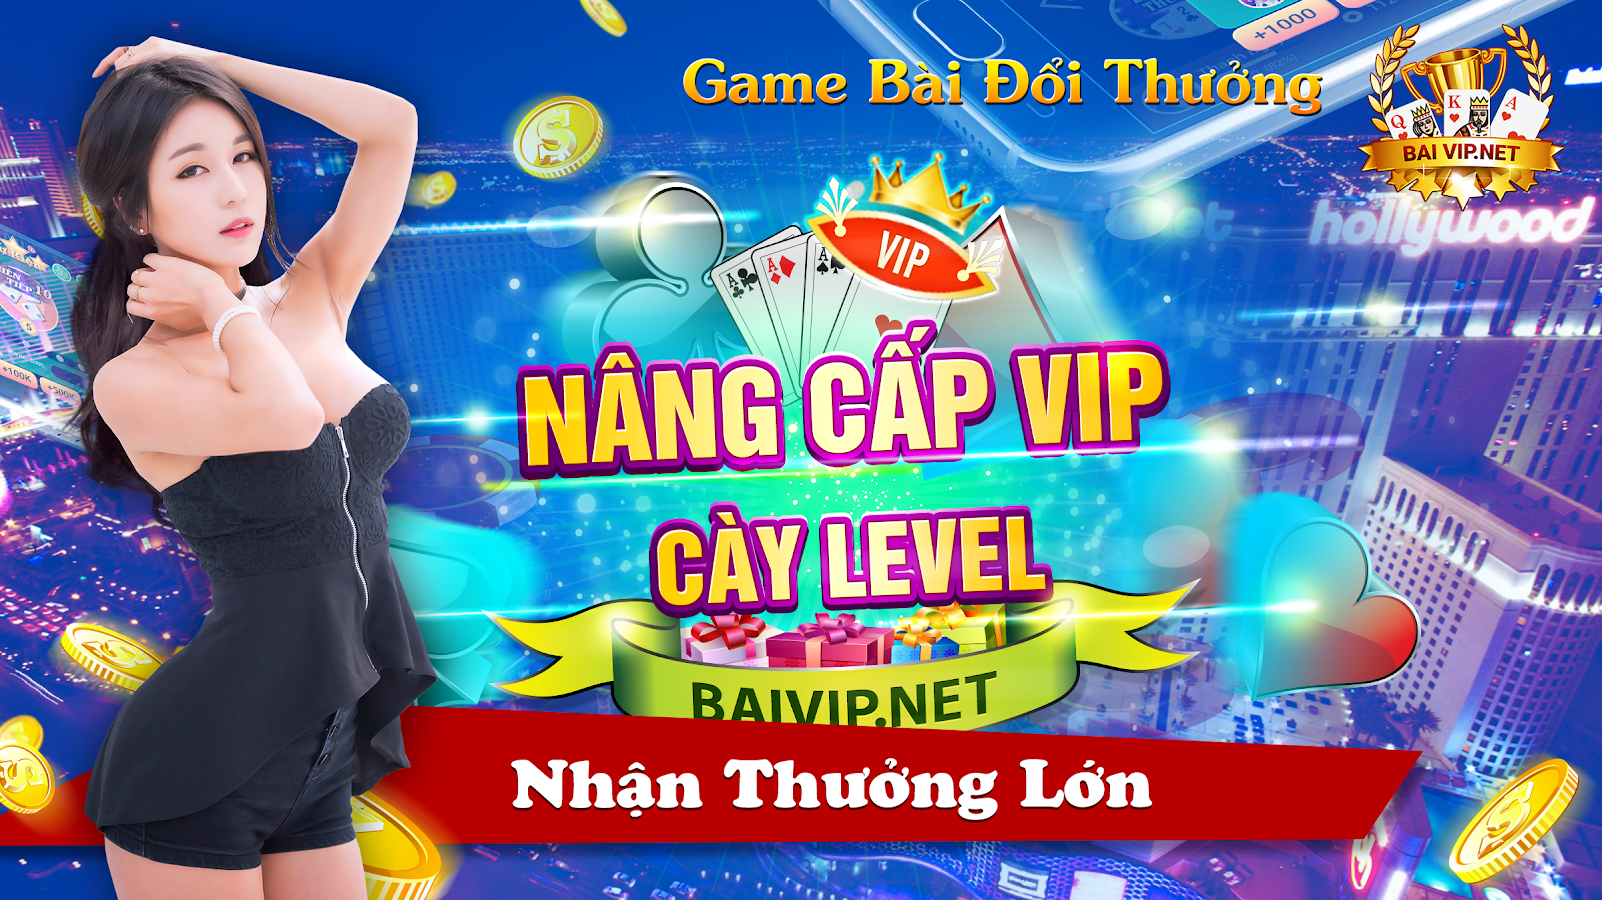 Game Bài Vip Online Screenshot 3